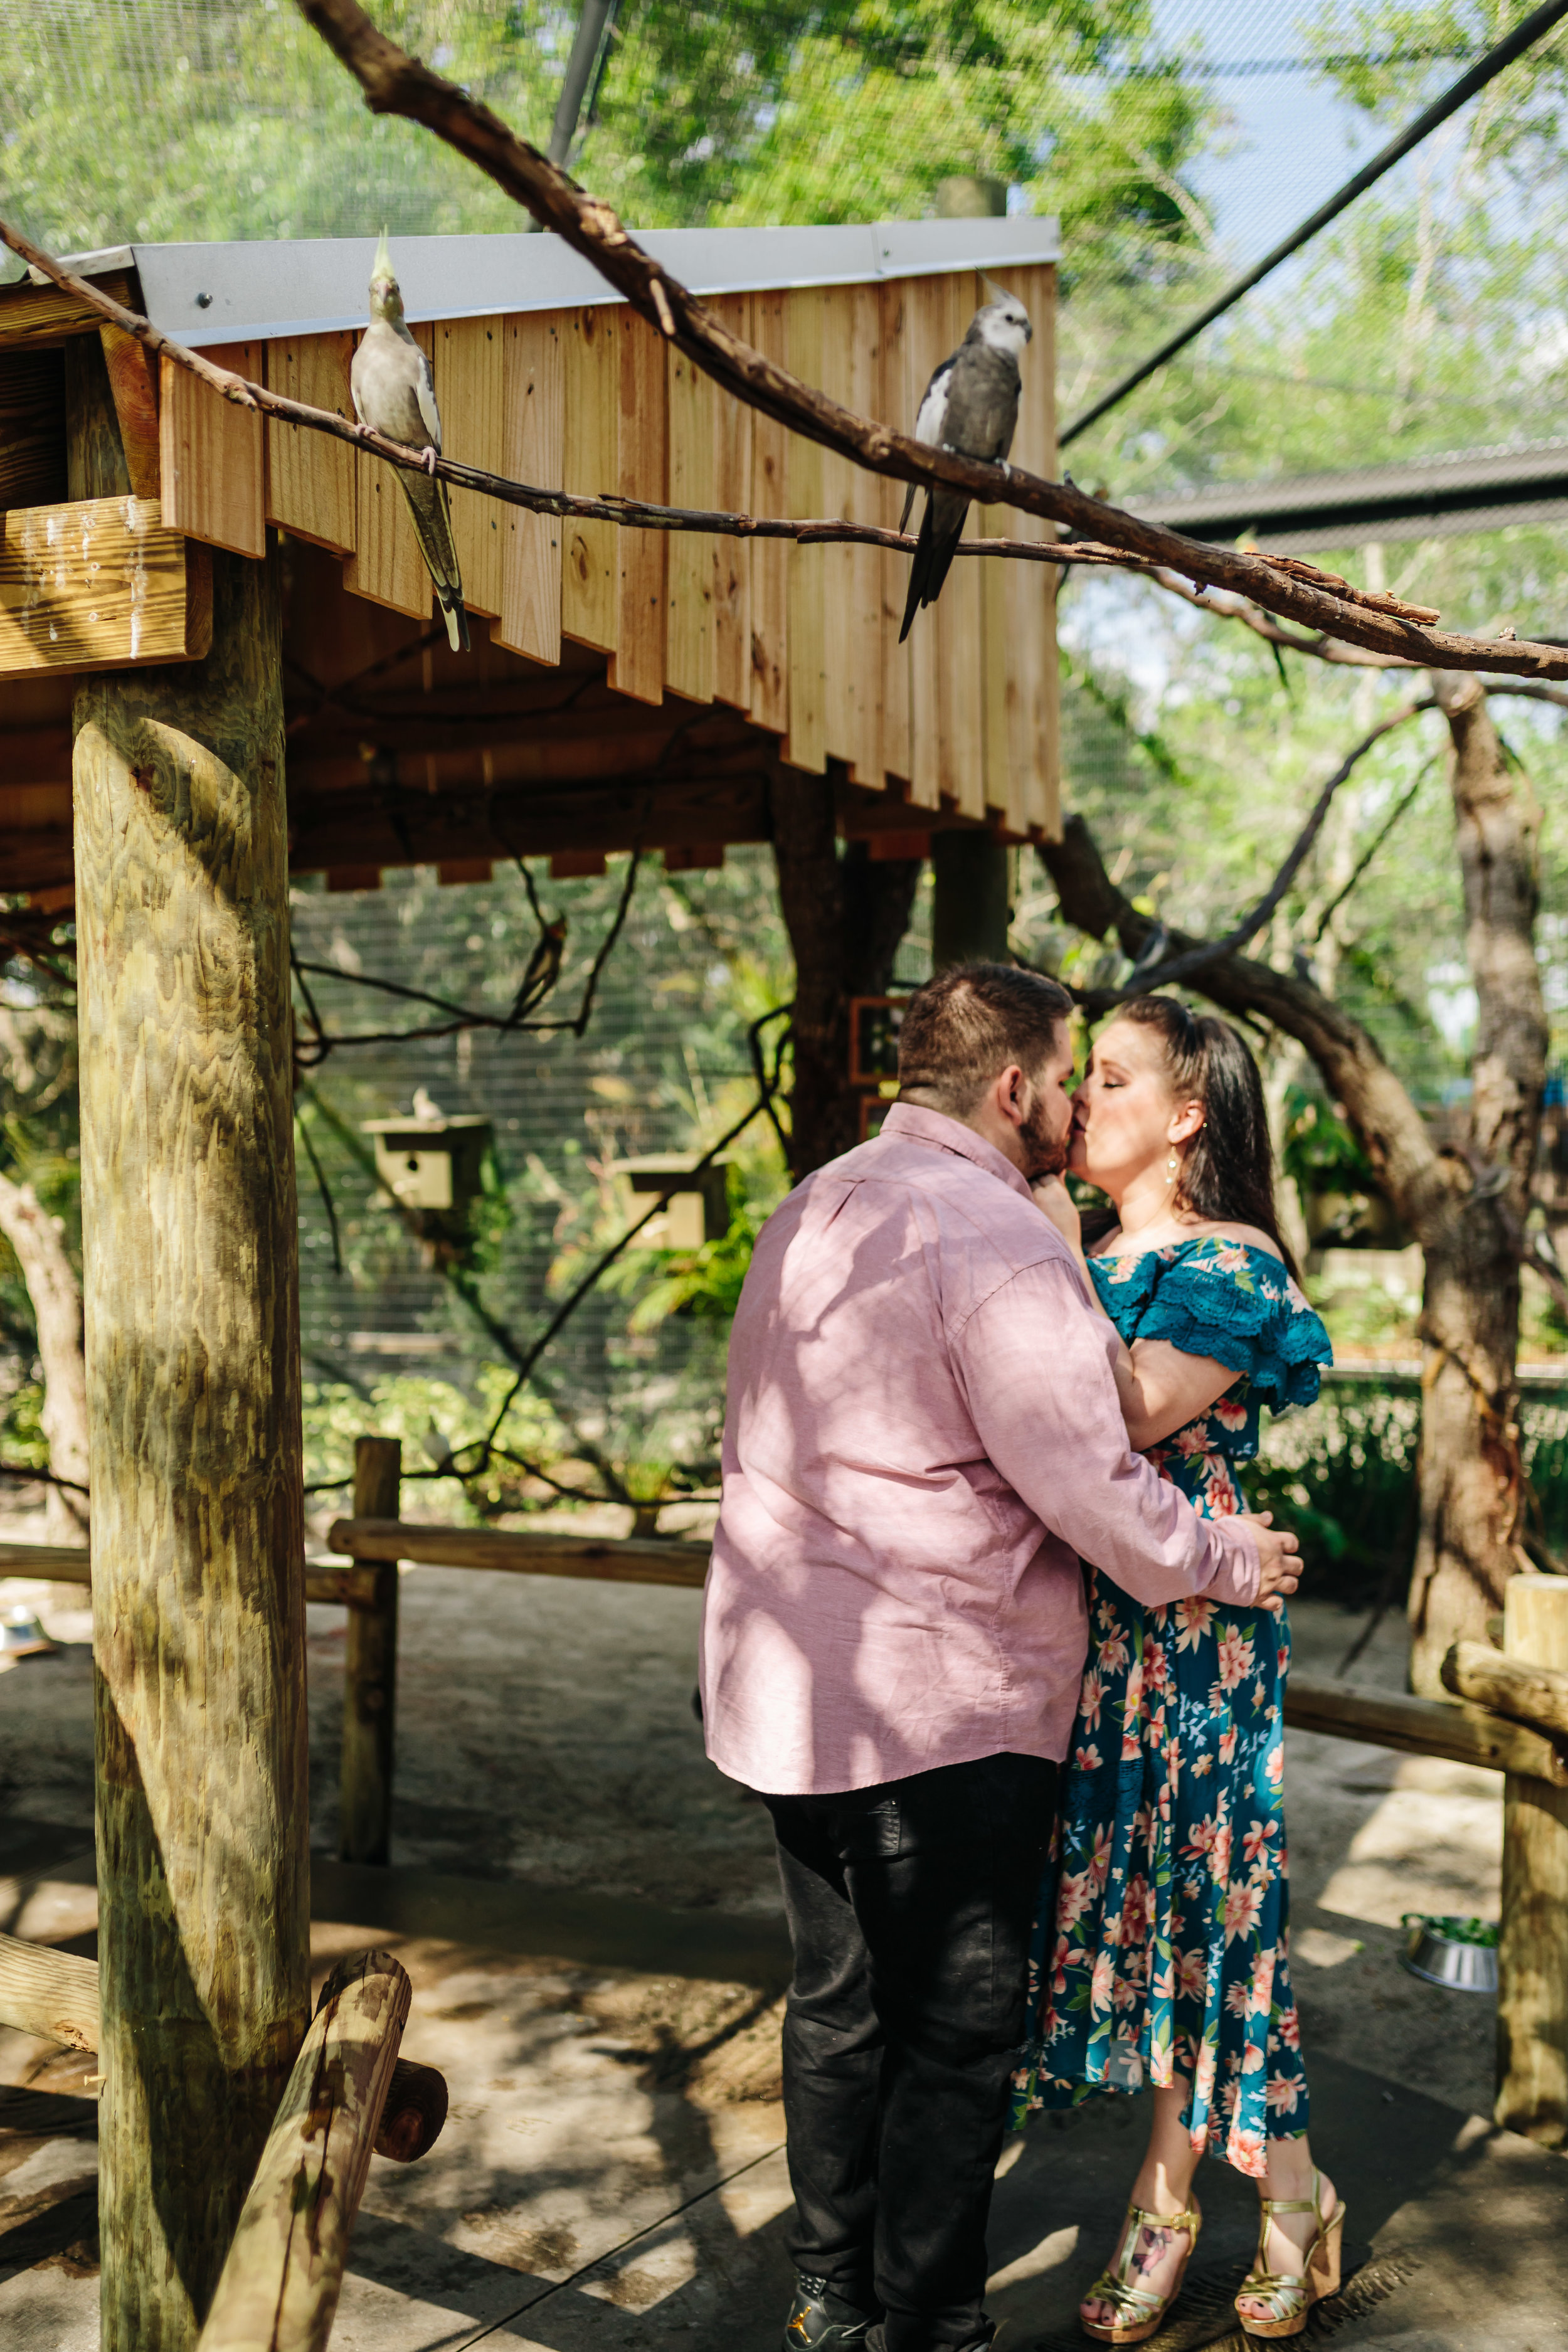 2018.05.01 Ashleigh and Nathan Brevard Zoo Engagement Session-61.jpg